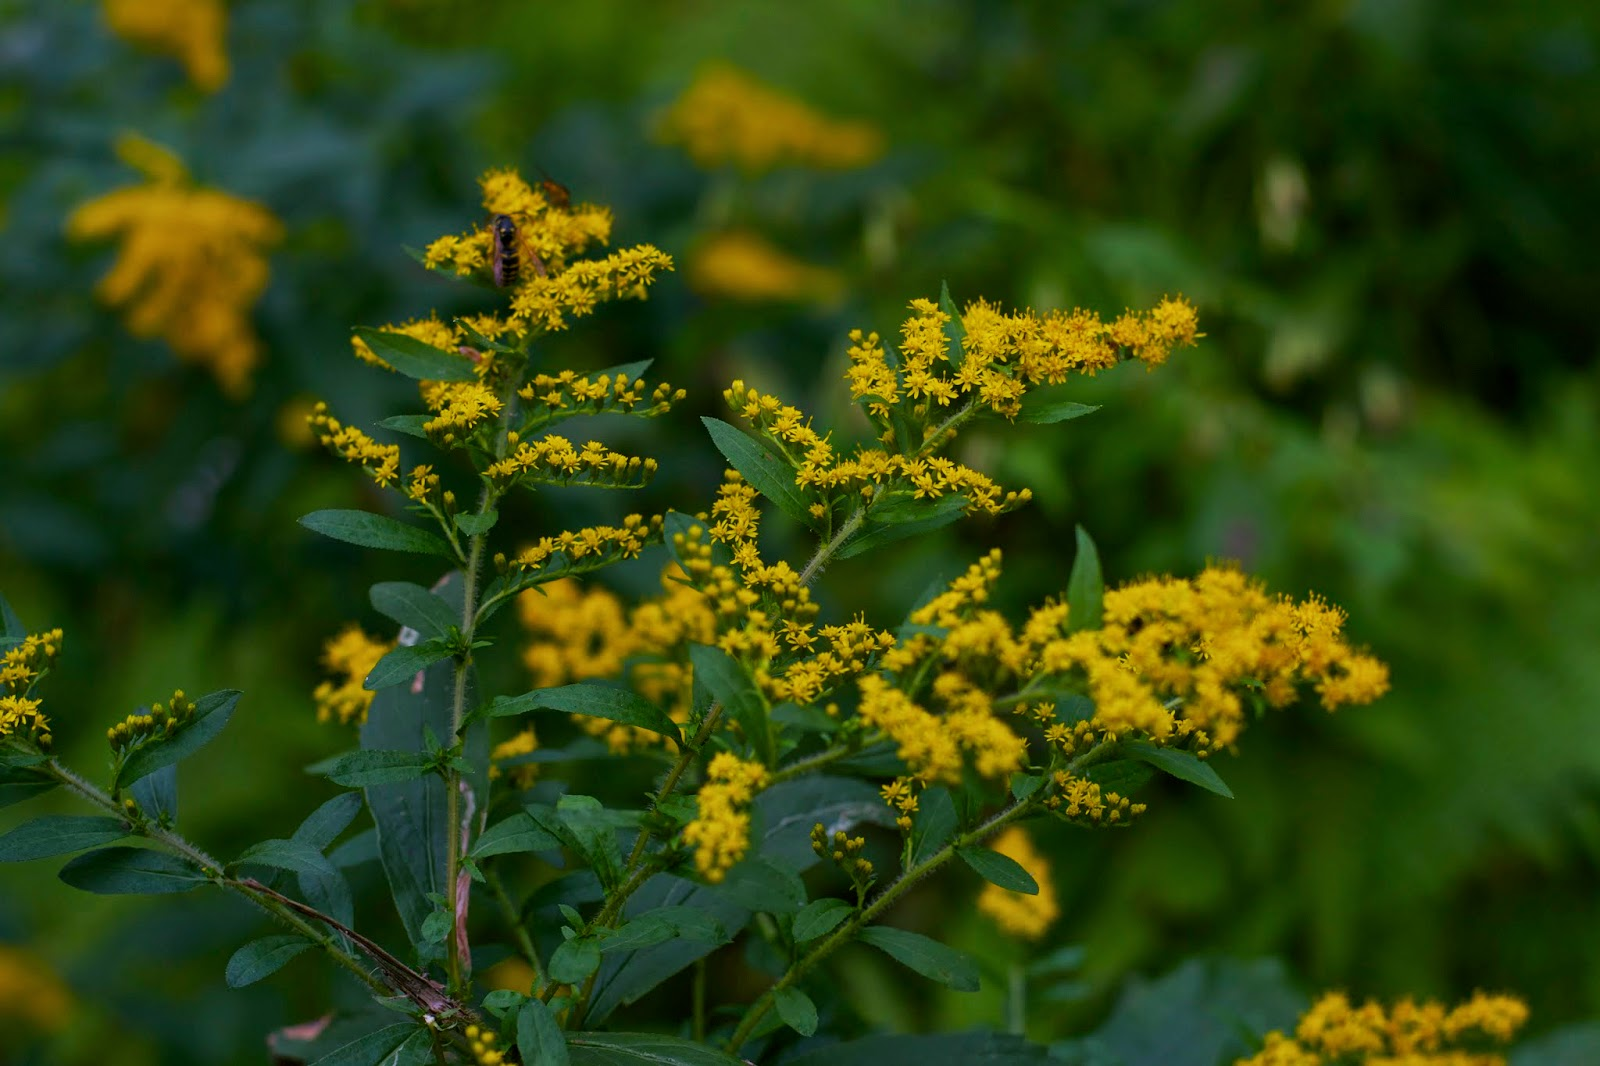 Pollinators on goldenrod at the end of the day